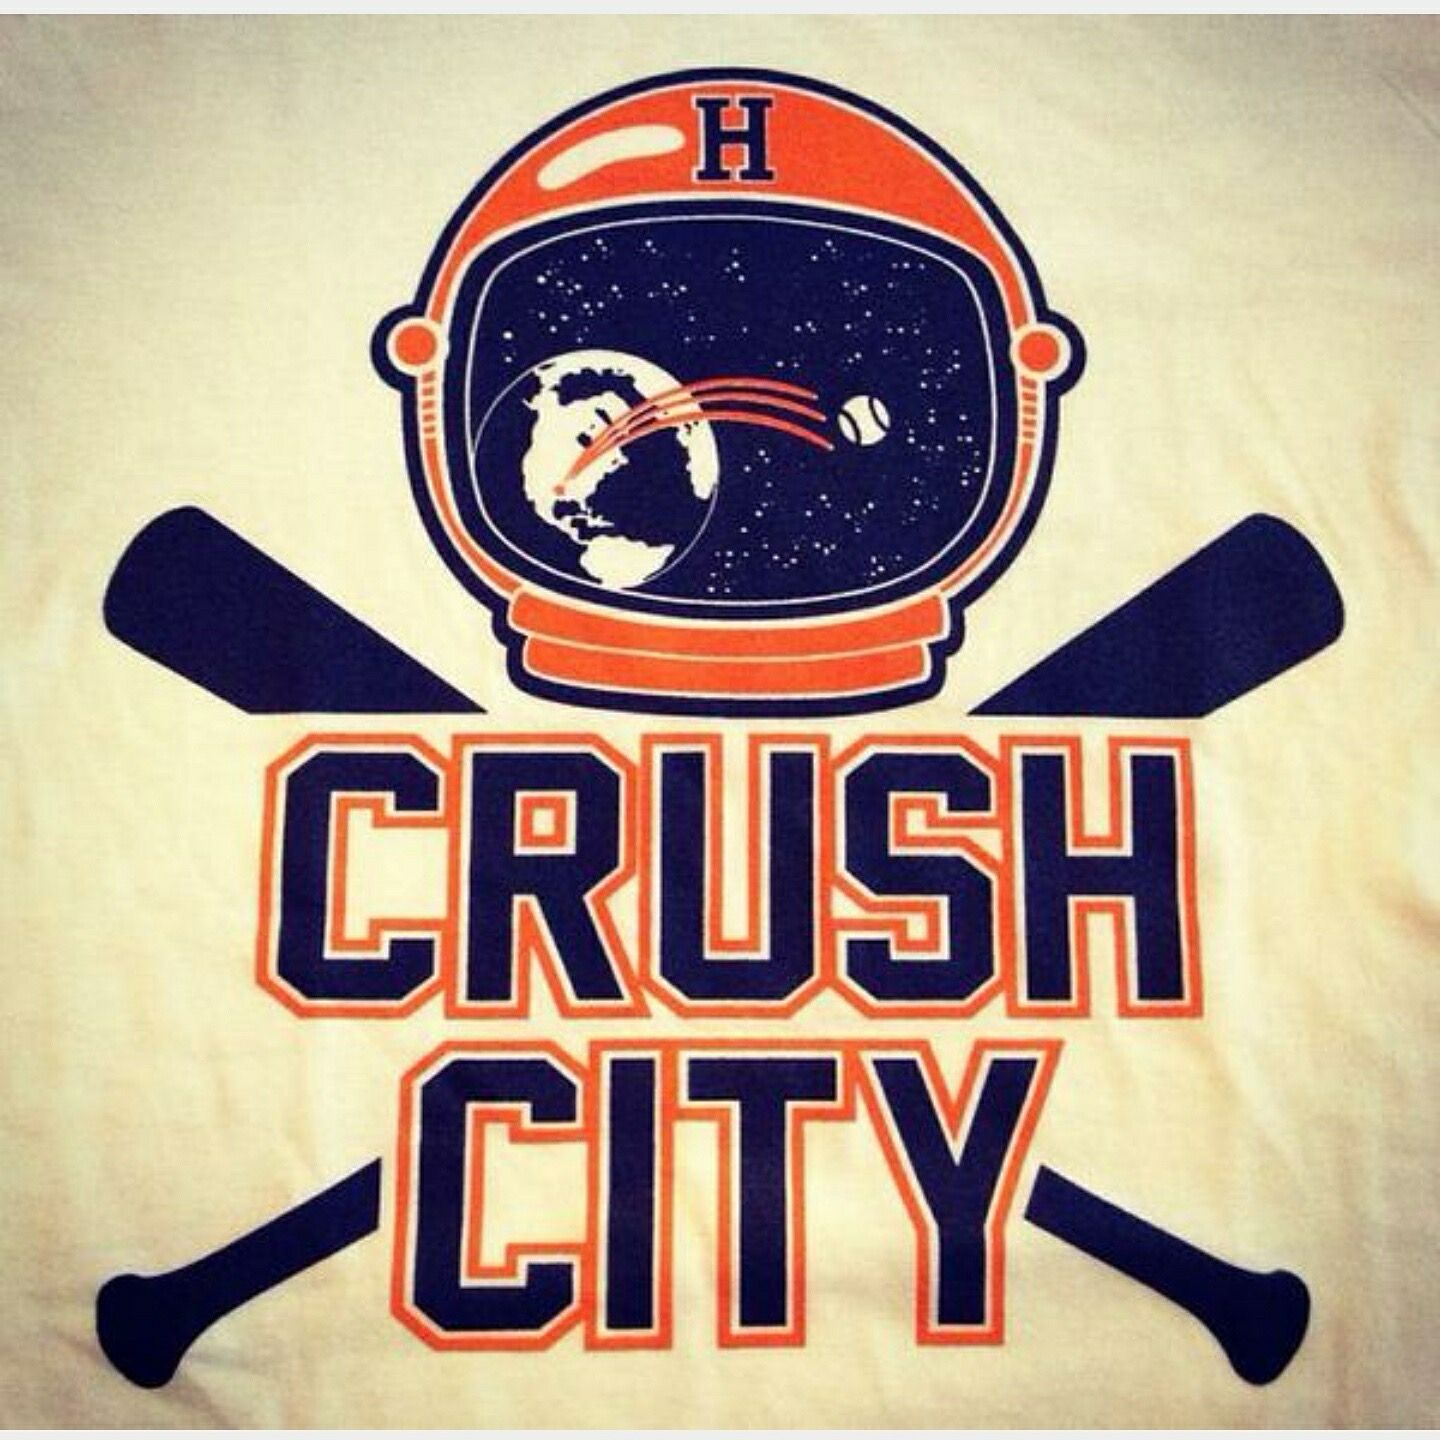 Crush City Houston Astros Houston Astros Baseball Astros Baseball